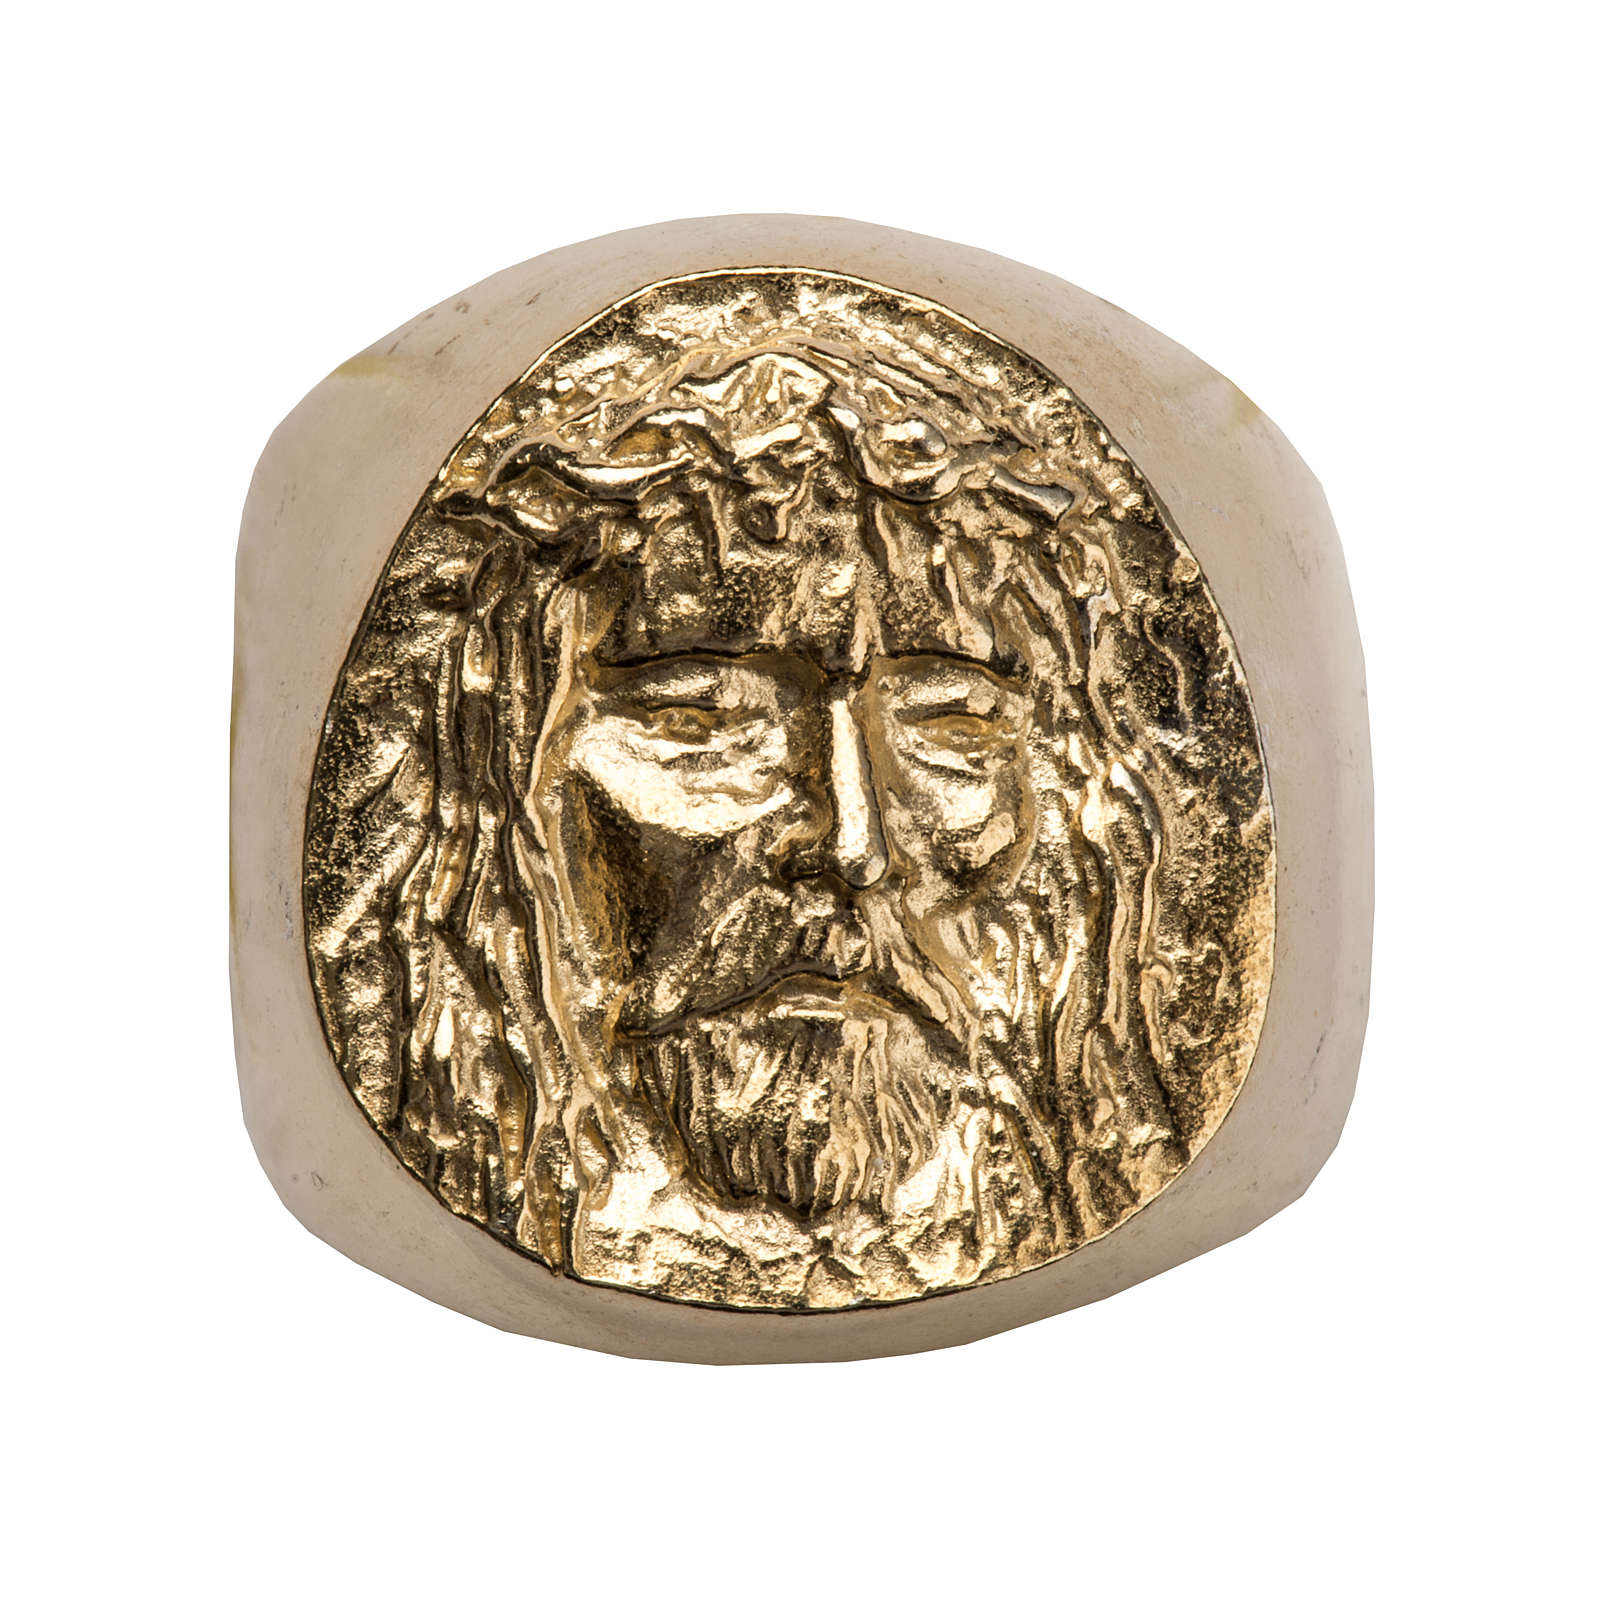 Bishop Ring in gold plated silver 800, Christ's face 3